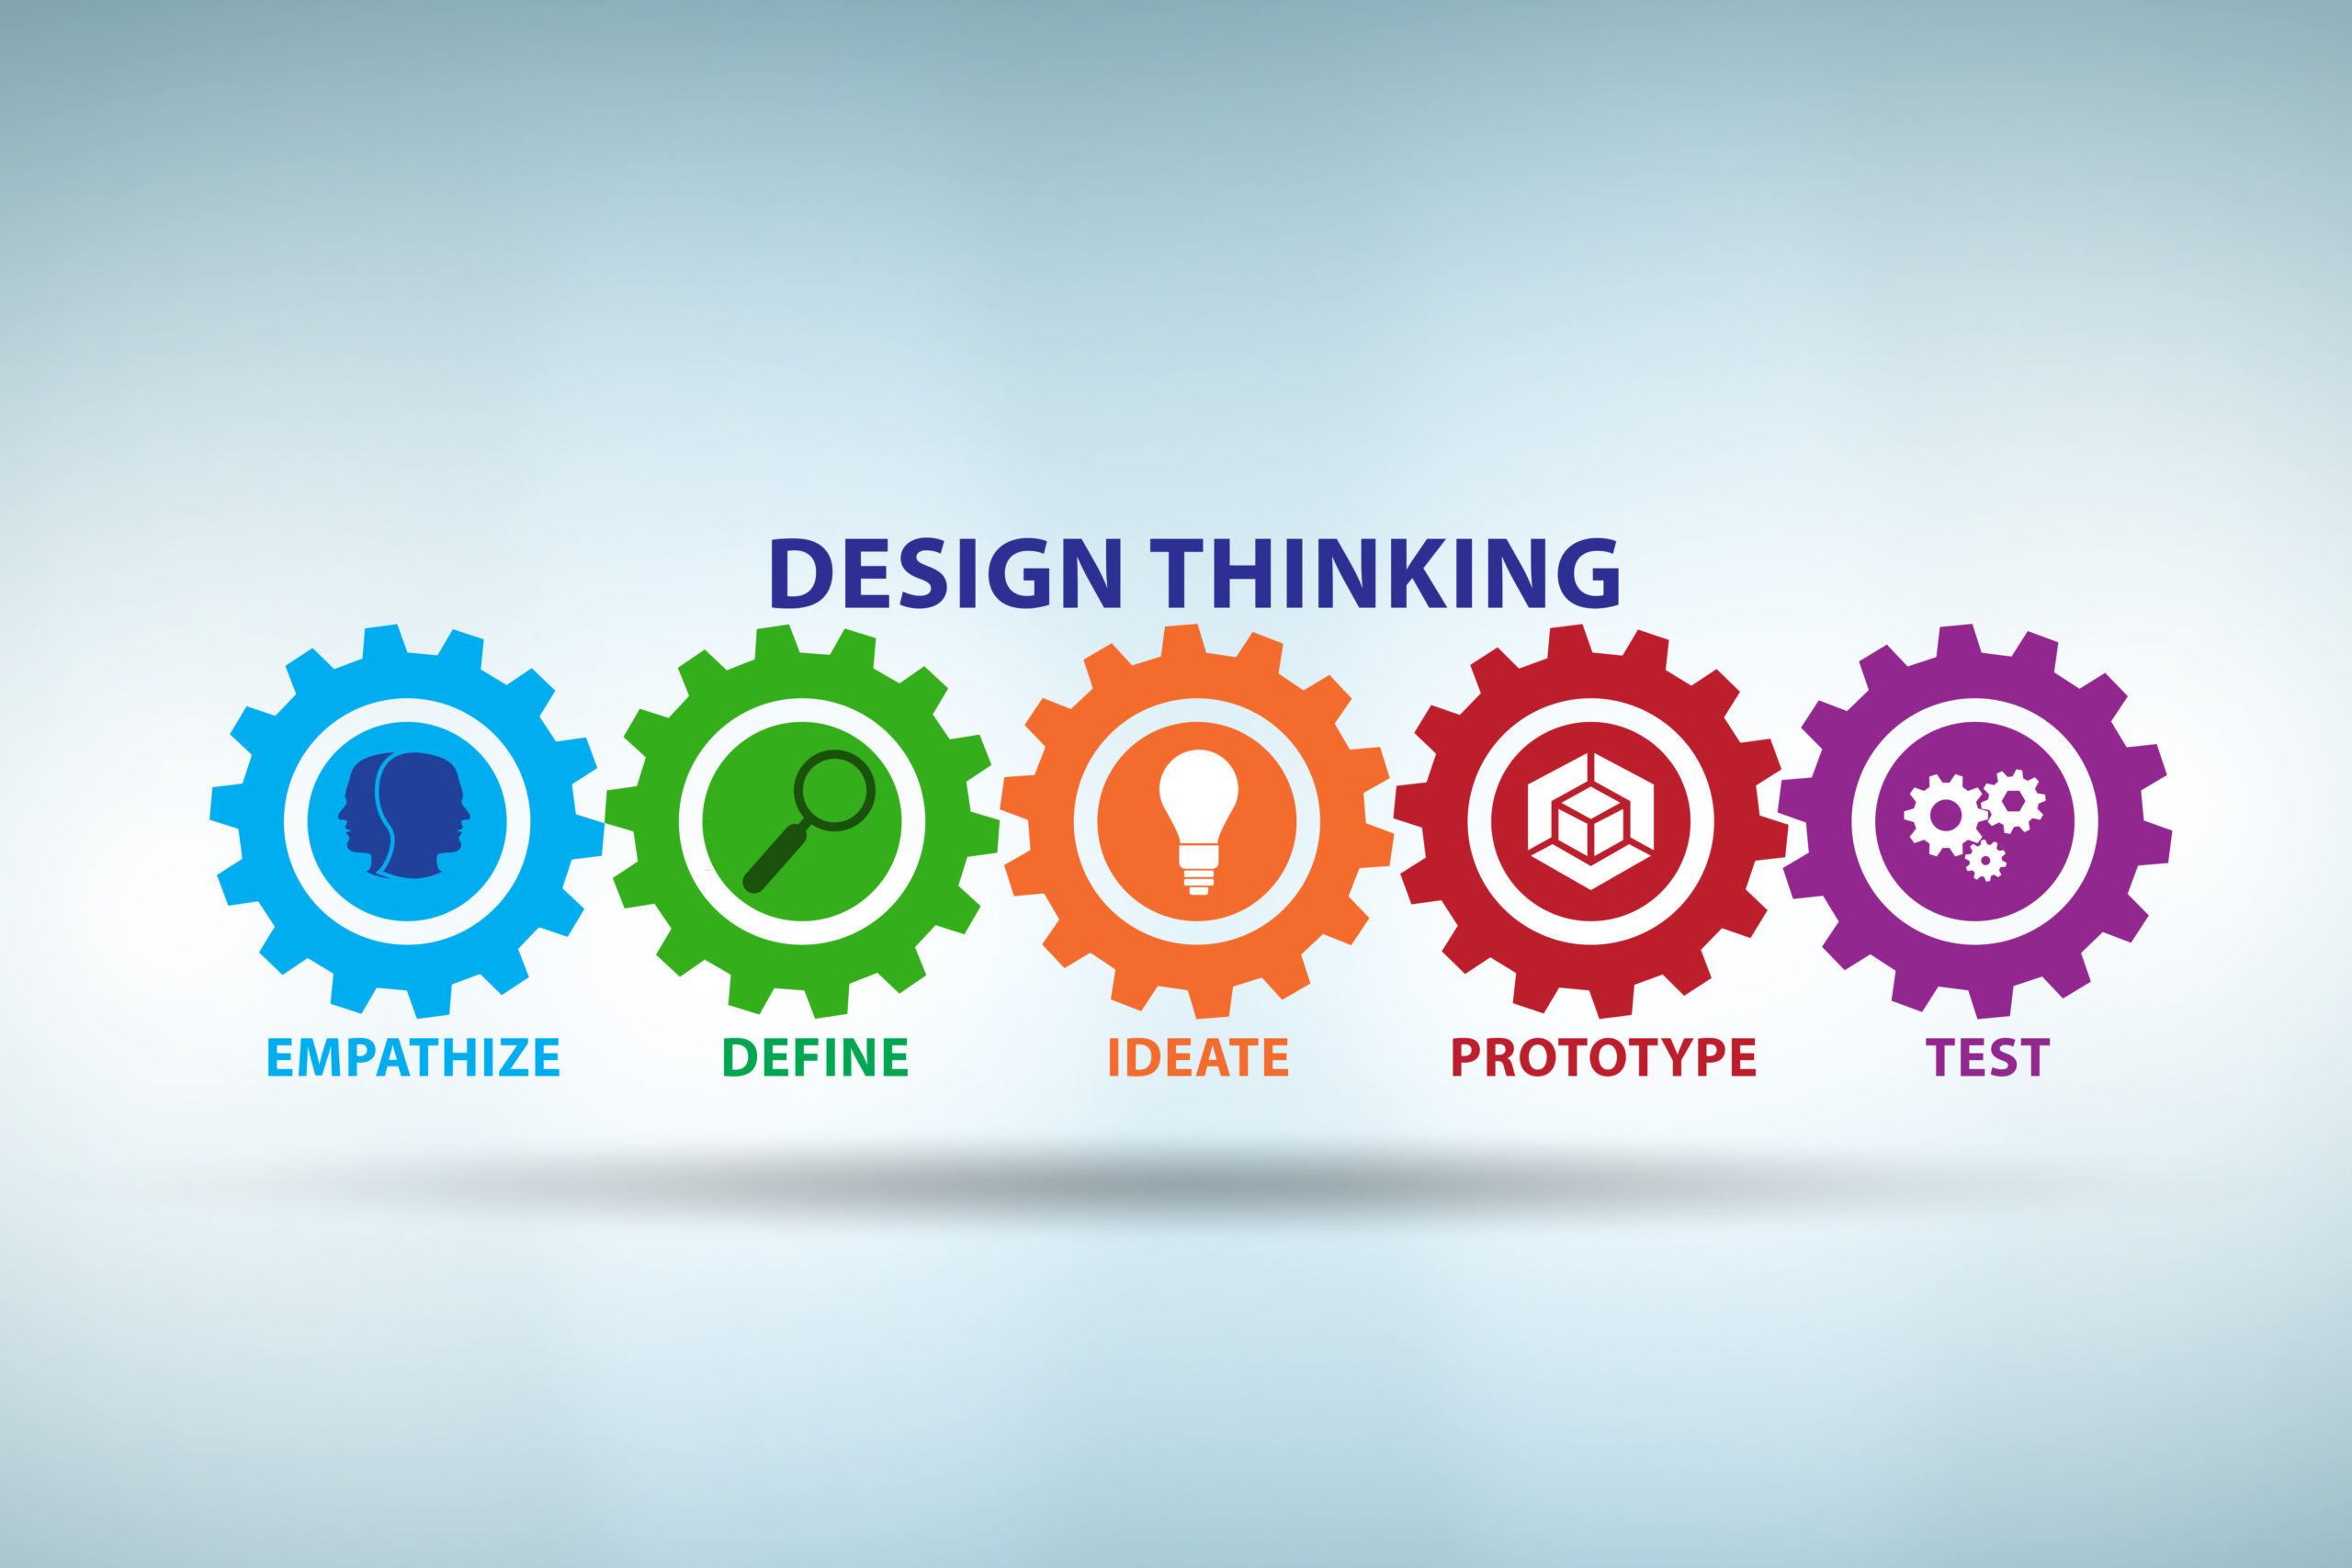 étapes d'un processus de design thinking